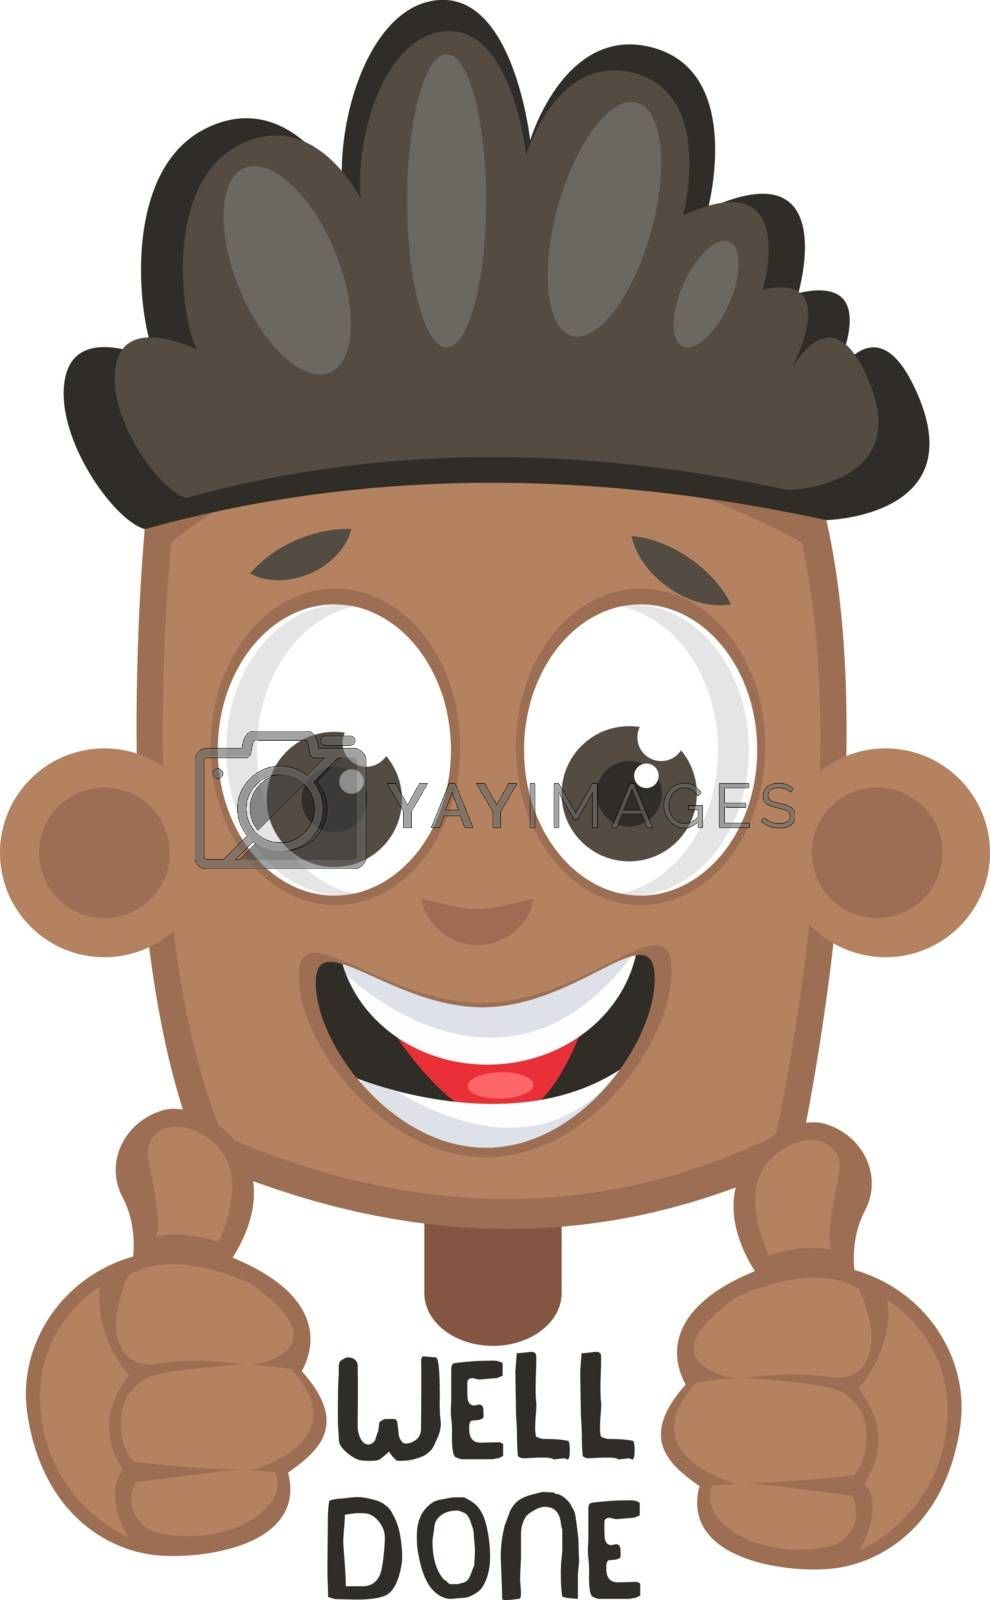 Boy showing well done sign, illustration, vector on white background.